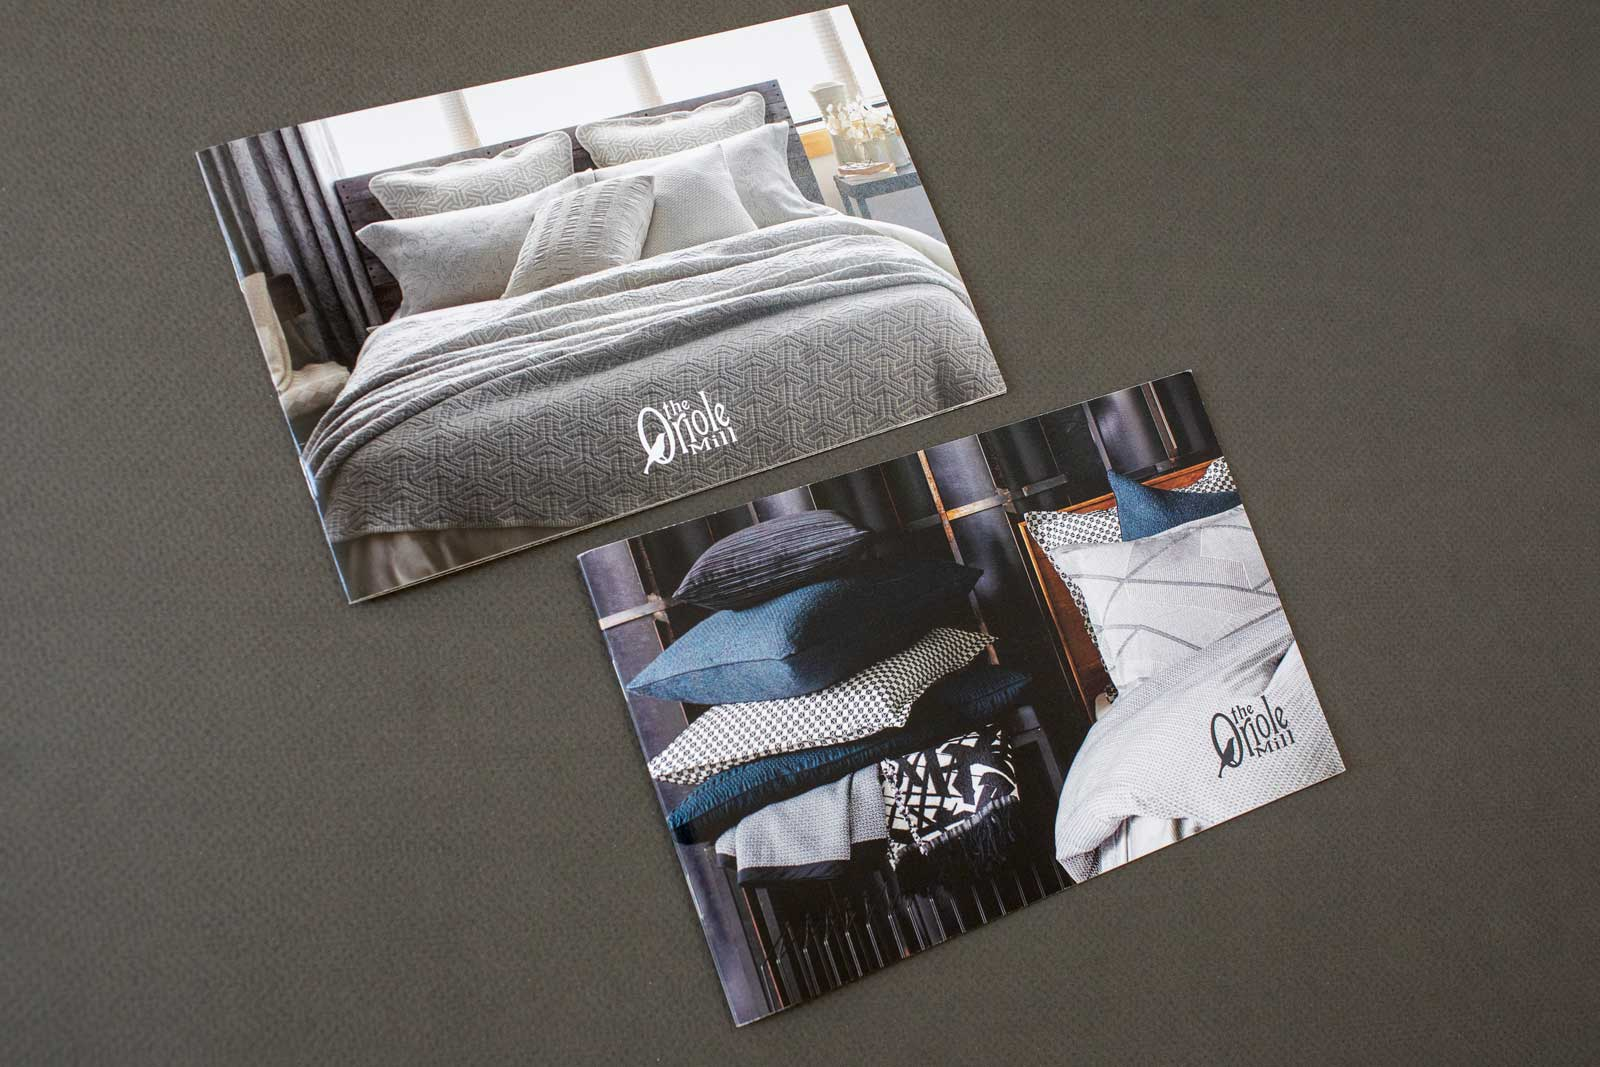 Brochure covers for The Oriole Mill, featuring pastel and neutral colored bed spreads and pillows with geometric patterns